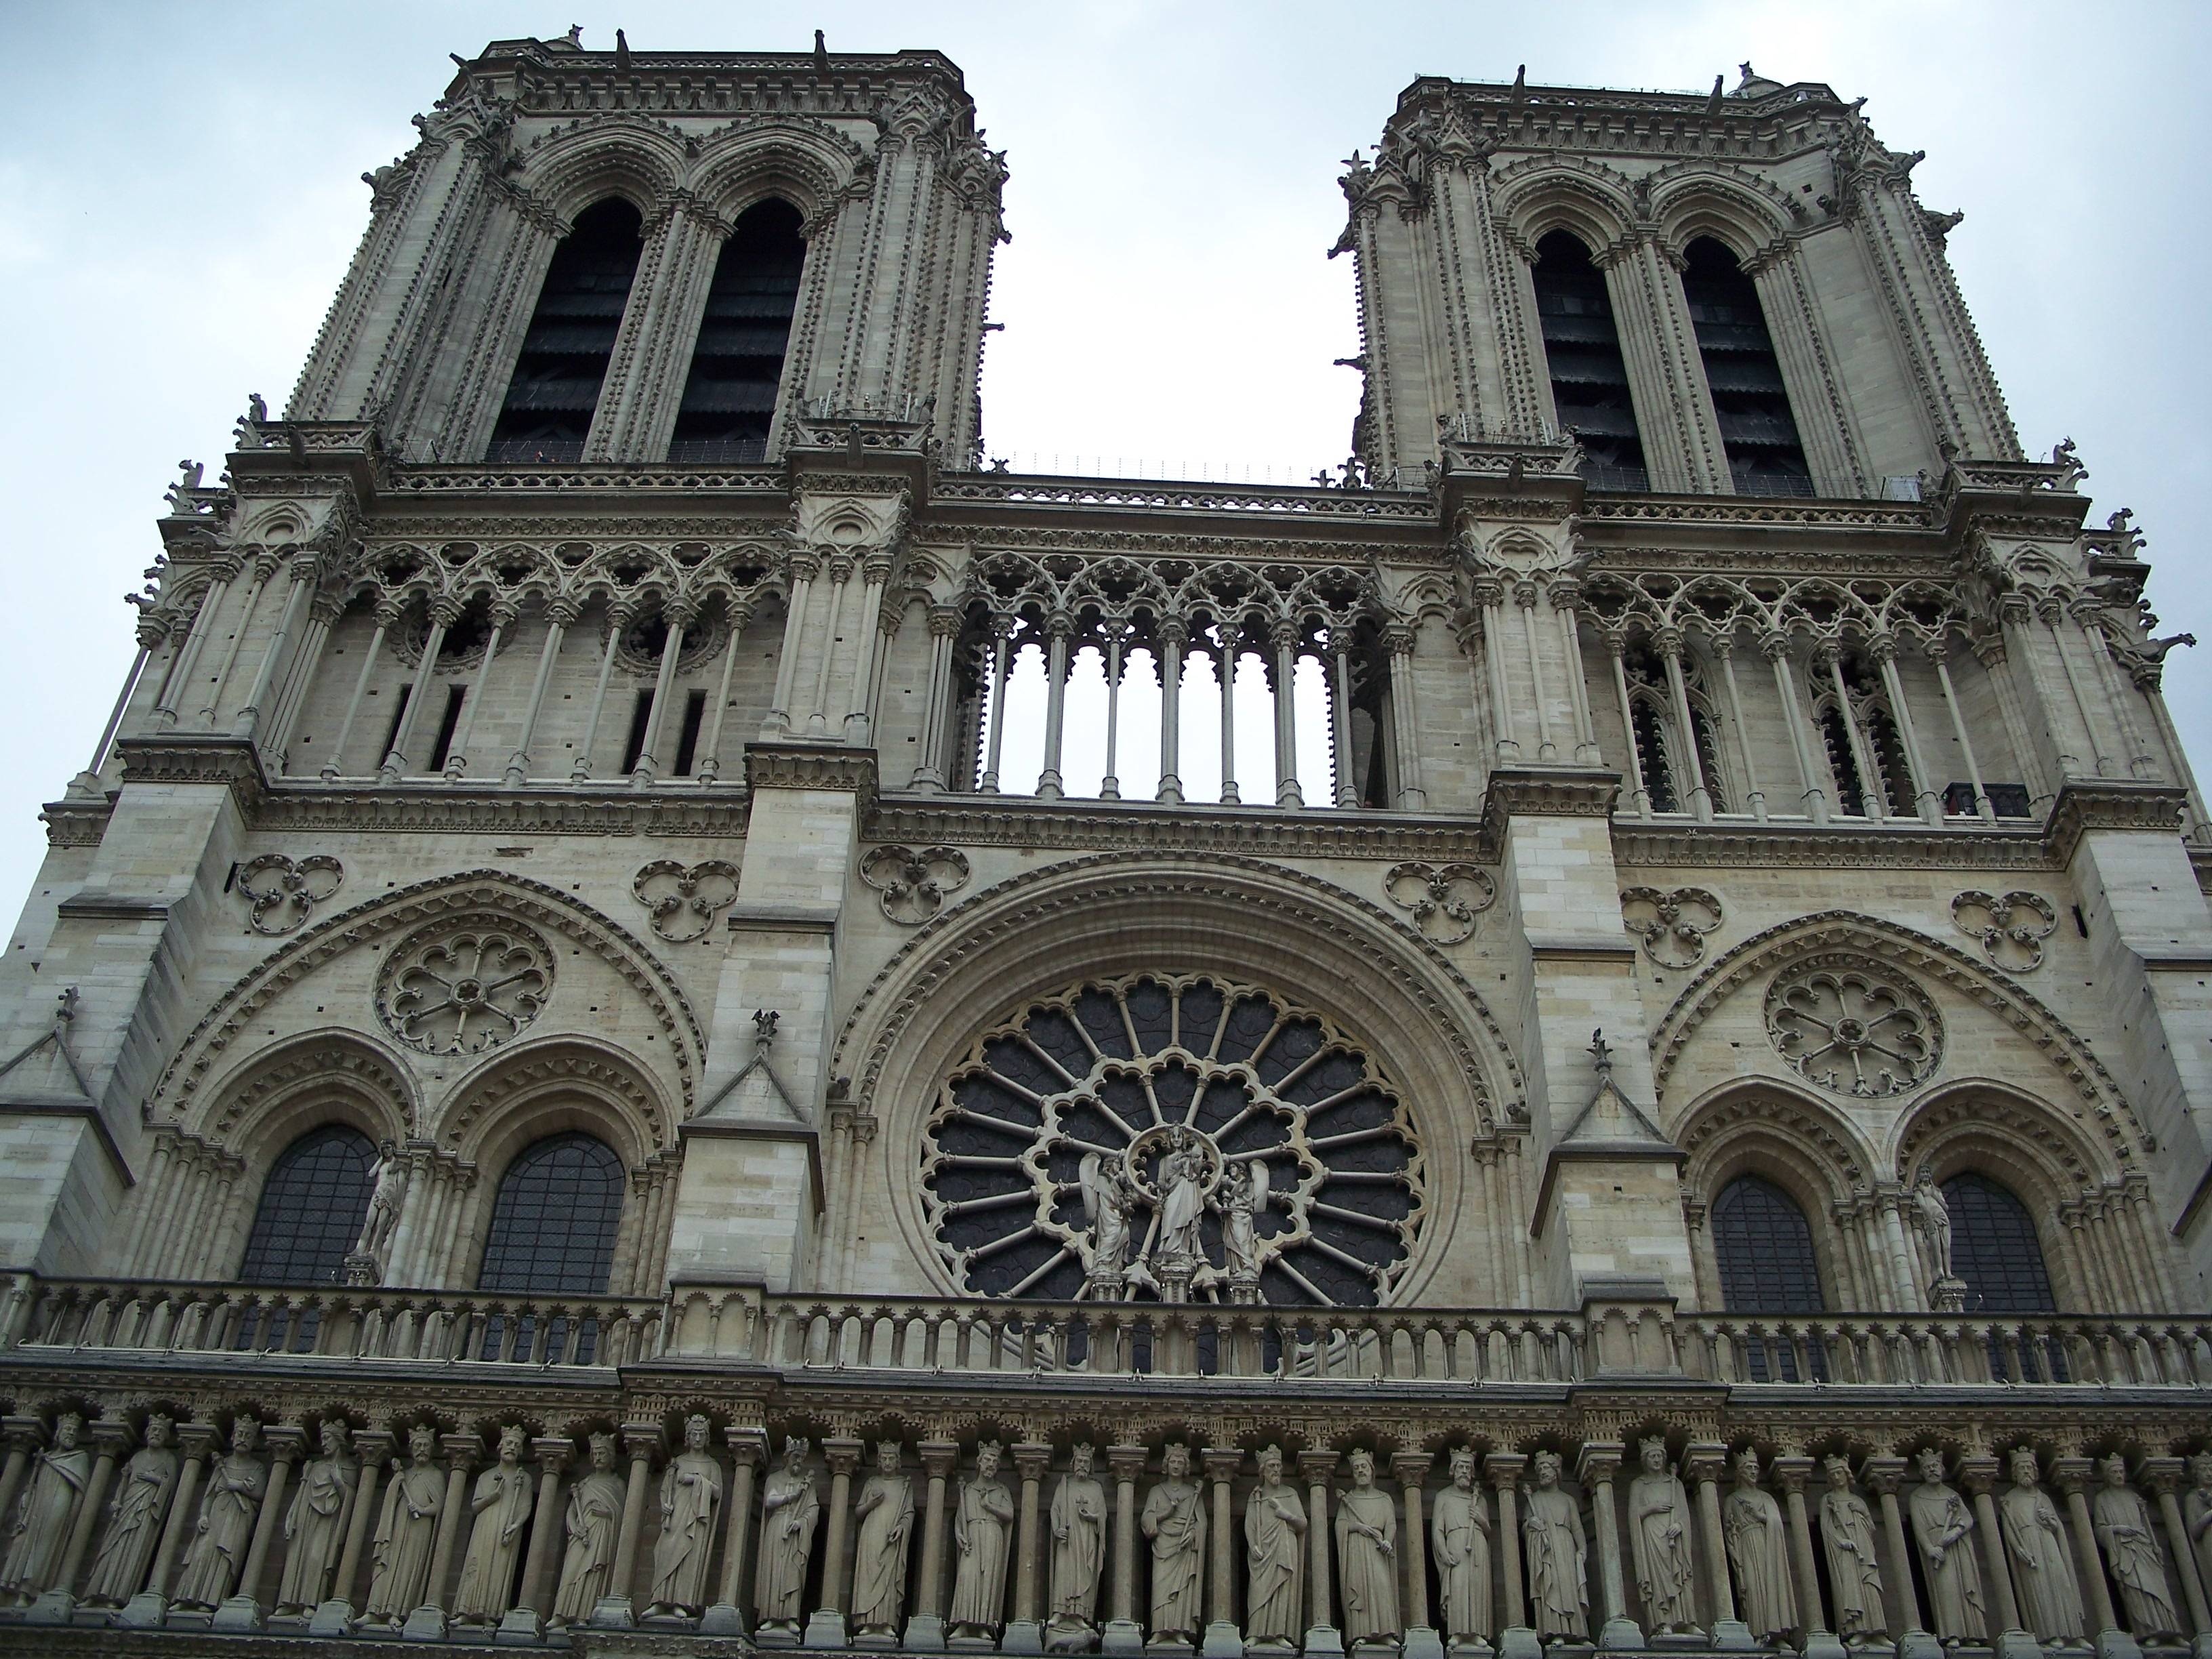 The Towers of the Notre Dame